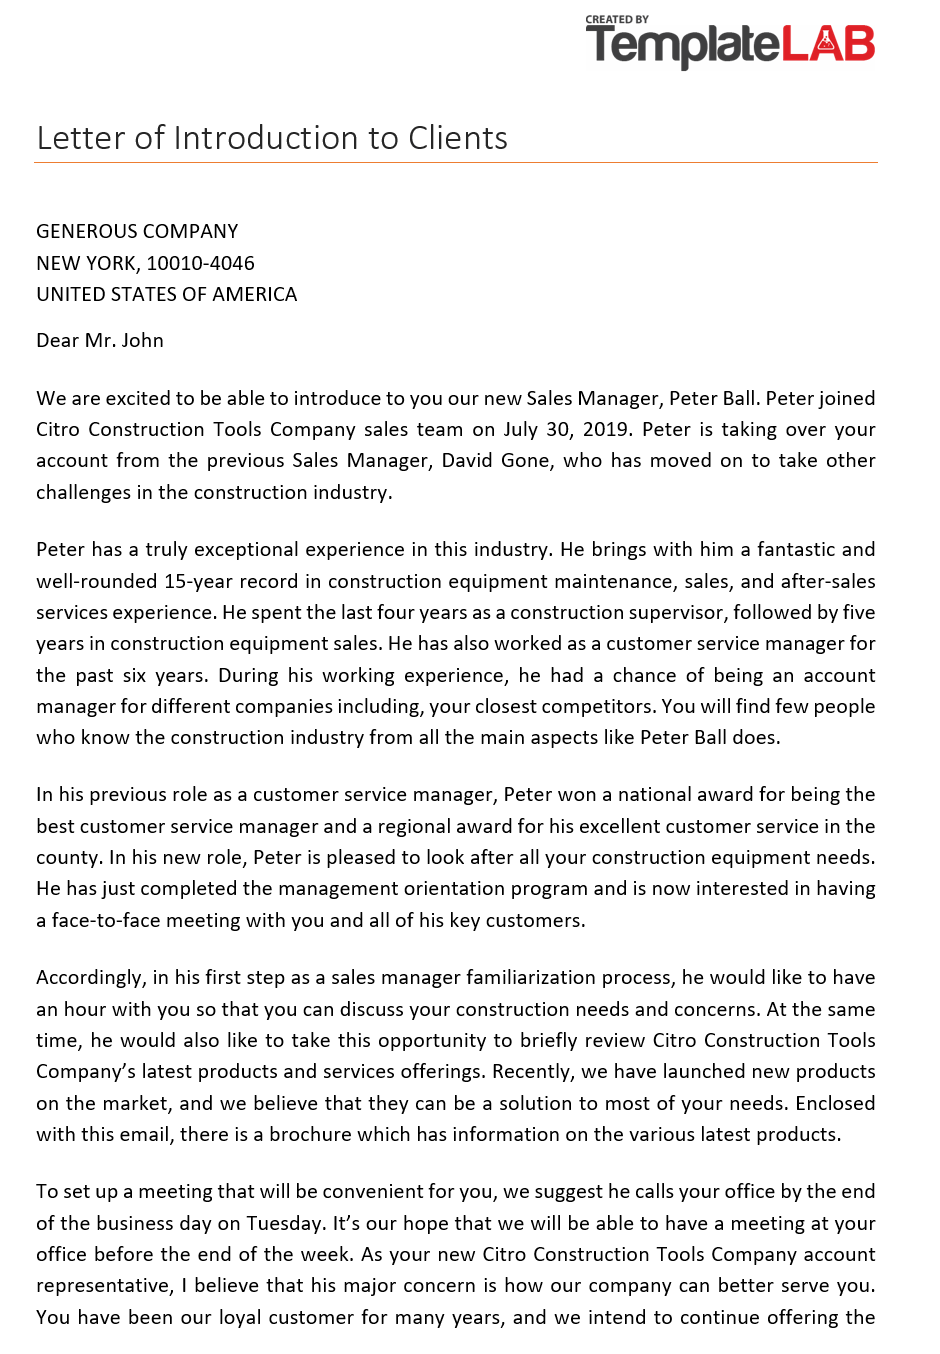 Free Letter of Introduction to Clients 1